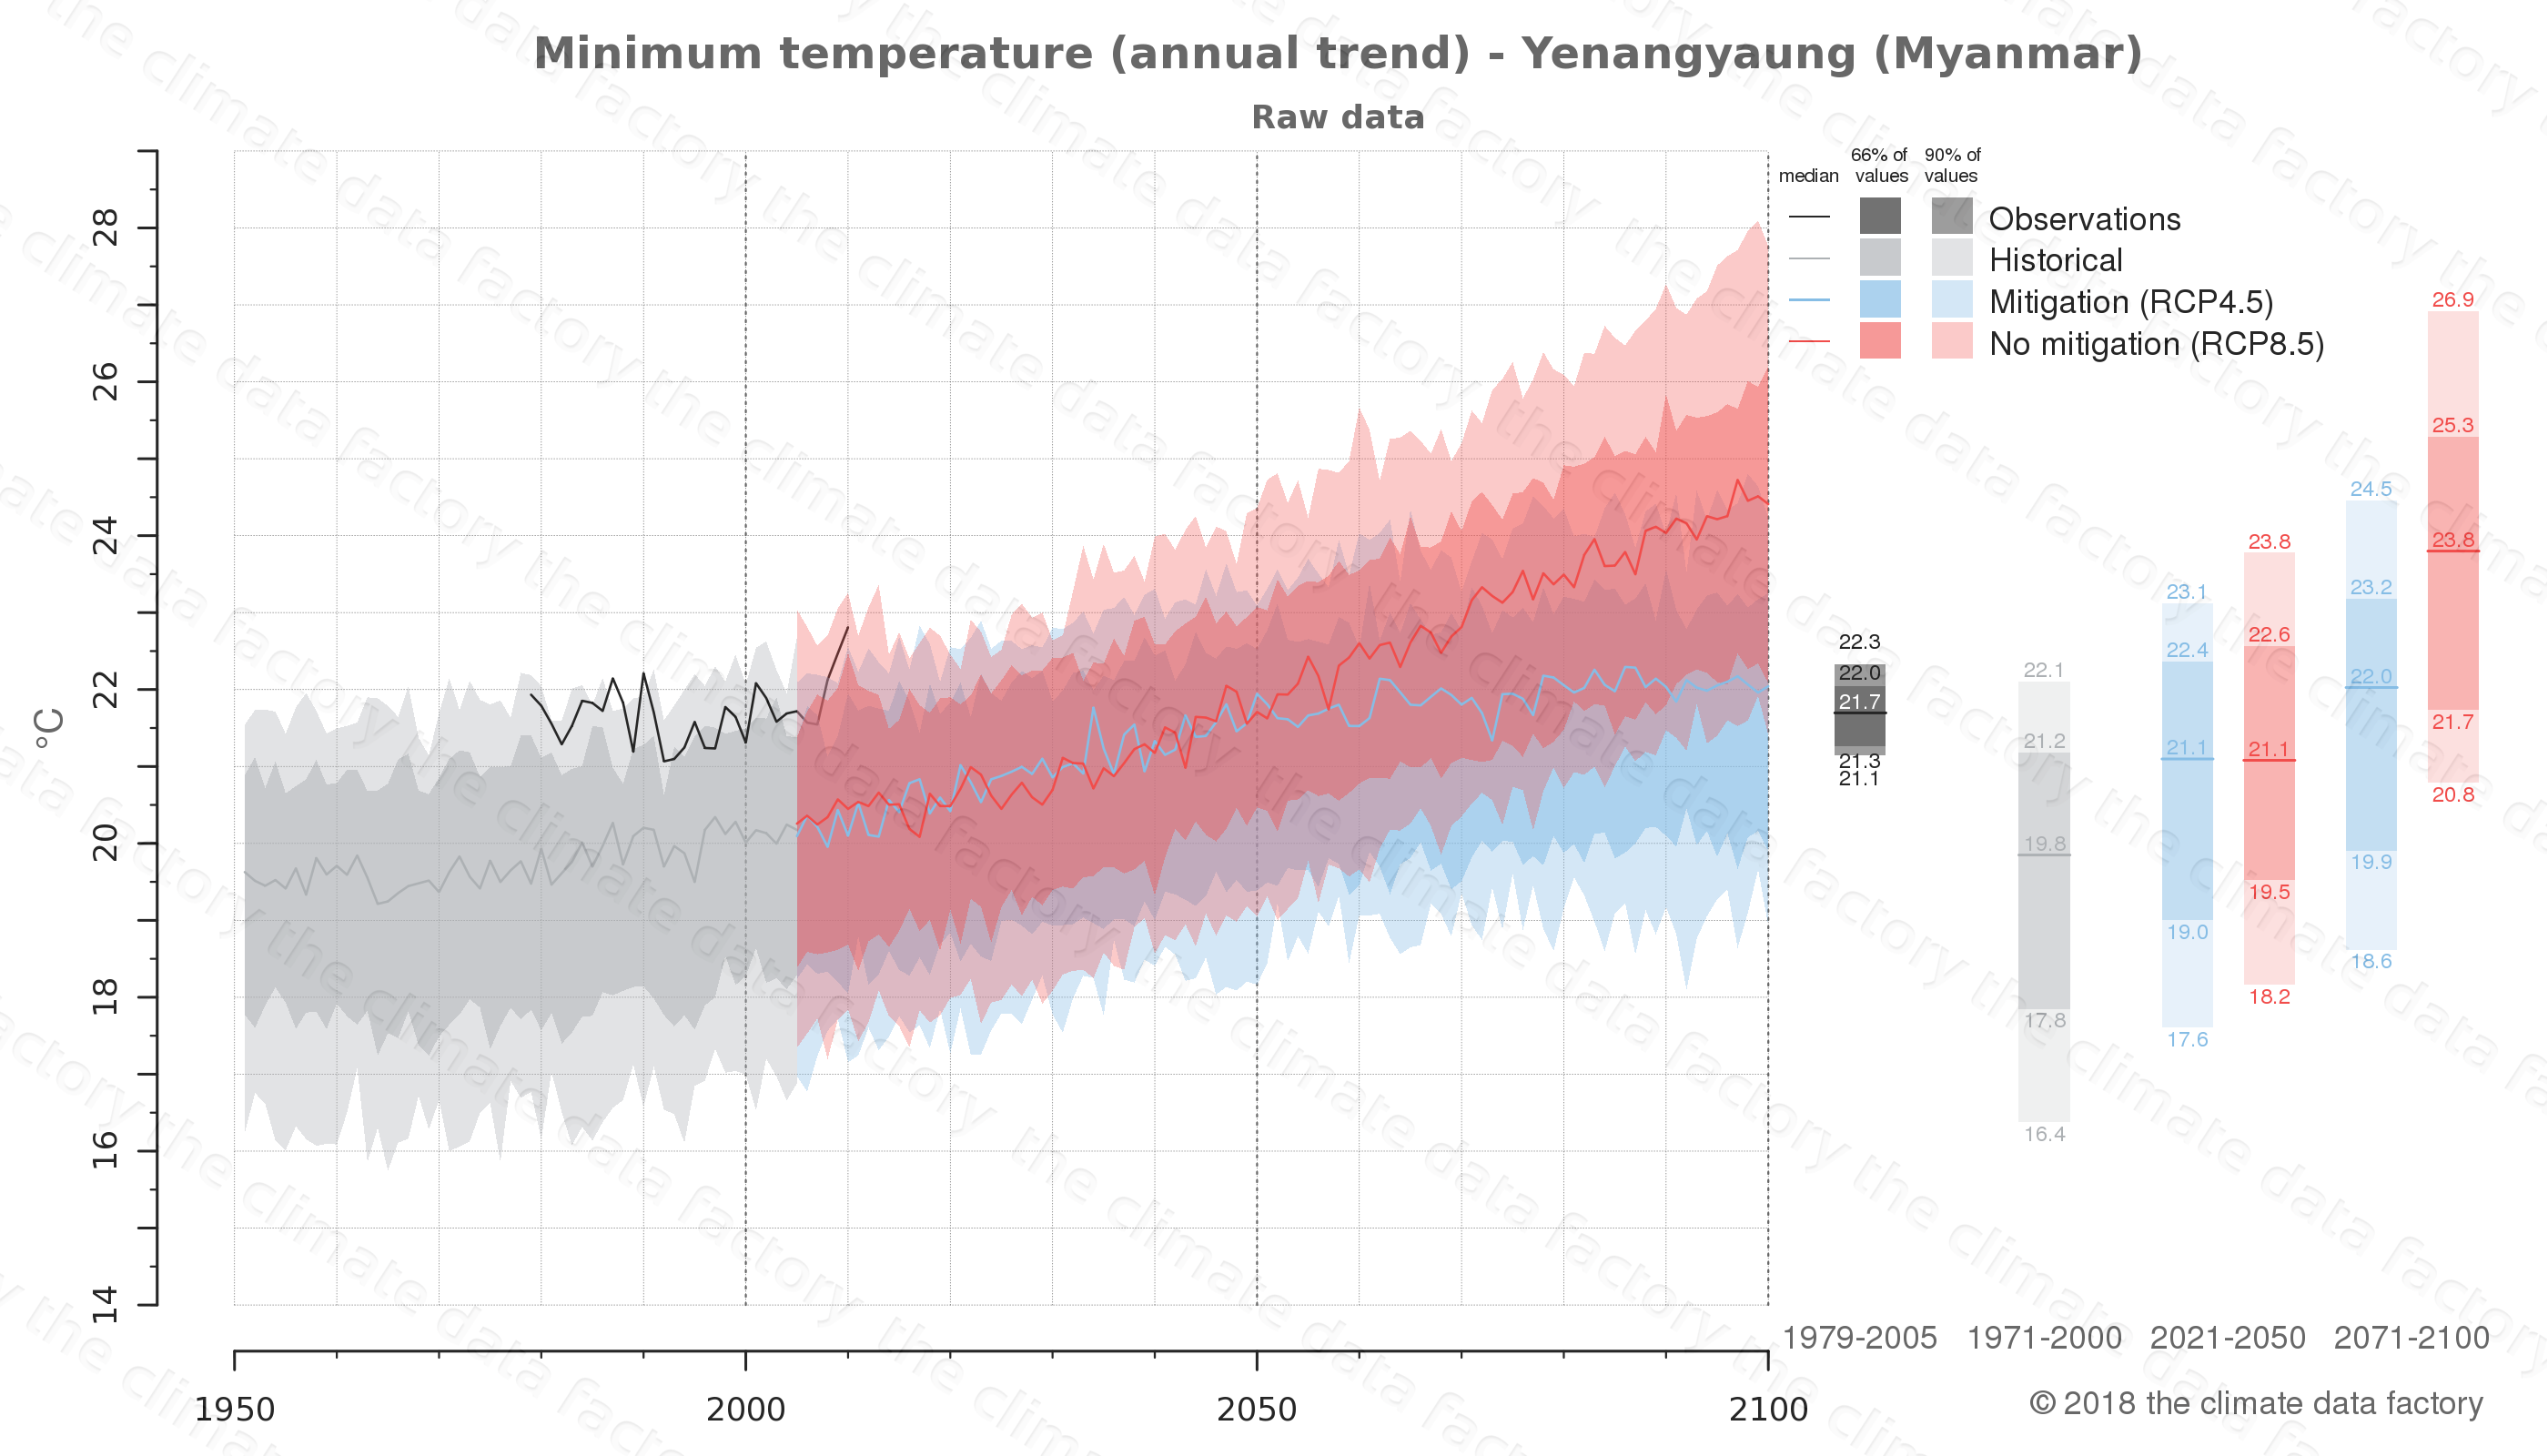 climate change data policy adaptation climate graph city data minimum-temperature yenangyaung myanmar